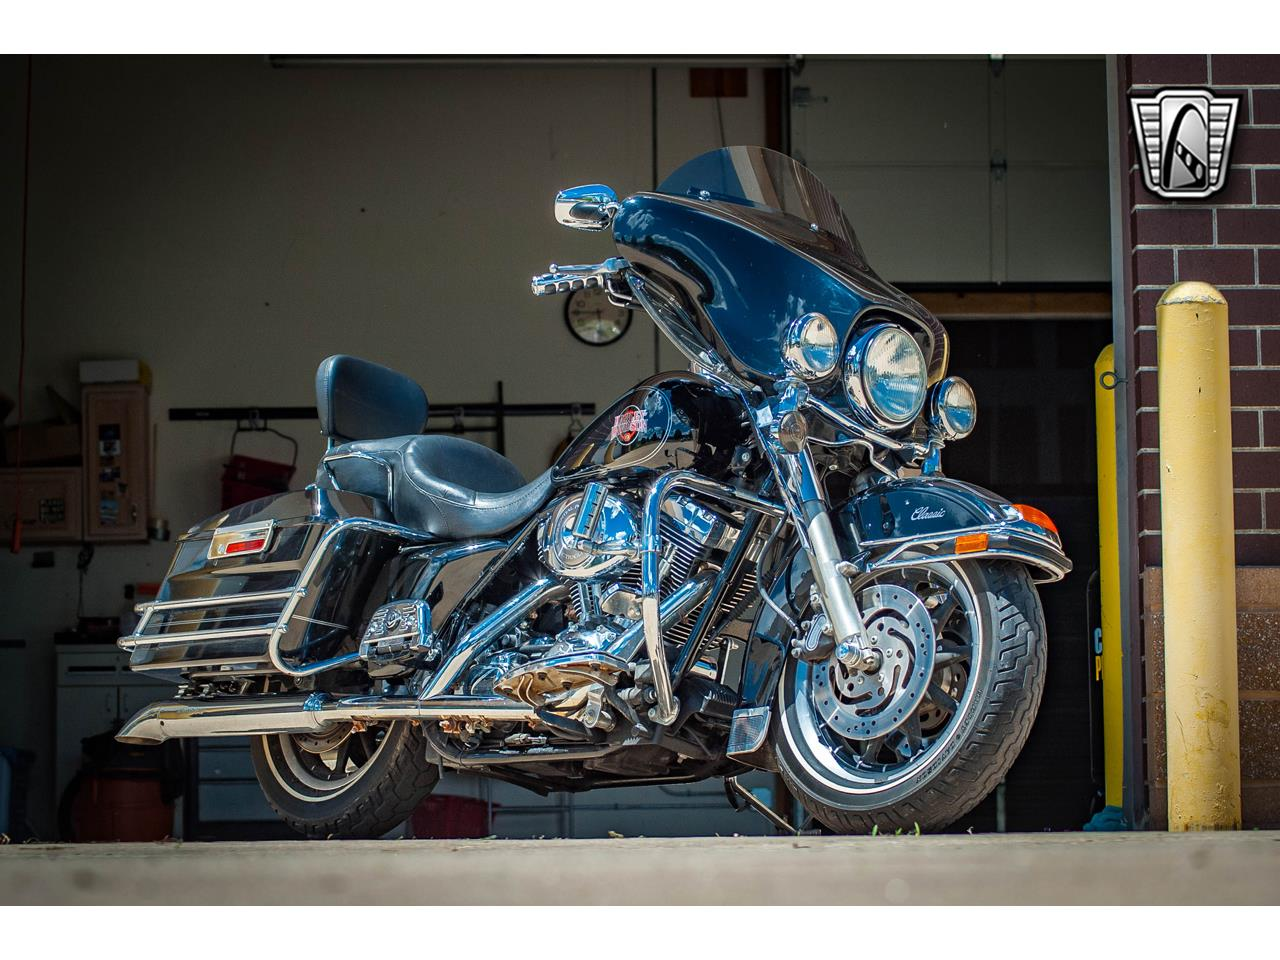 Large Picture of 2004 Motorcycle - $12,000.00 Offered by Gateway Classic Cars - St. Louis - QD6F